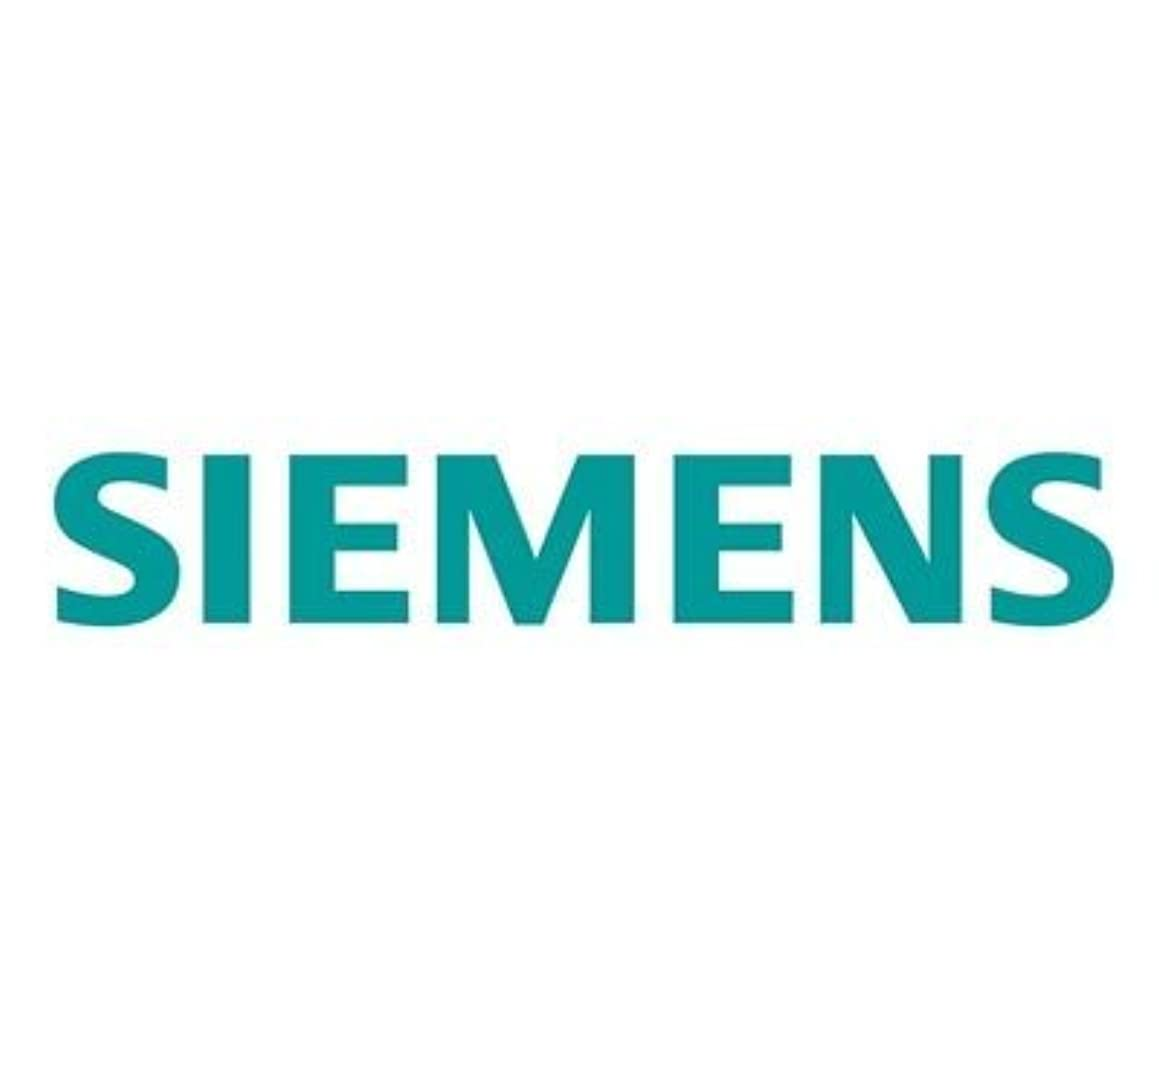 Siemens 3RT1945-5AU61 Contactor Coil, AC Operation, S3 Size, Screw Connection, 277 V, 60 Hz Rated Control Supply Voltage